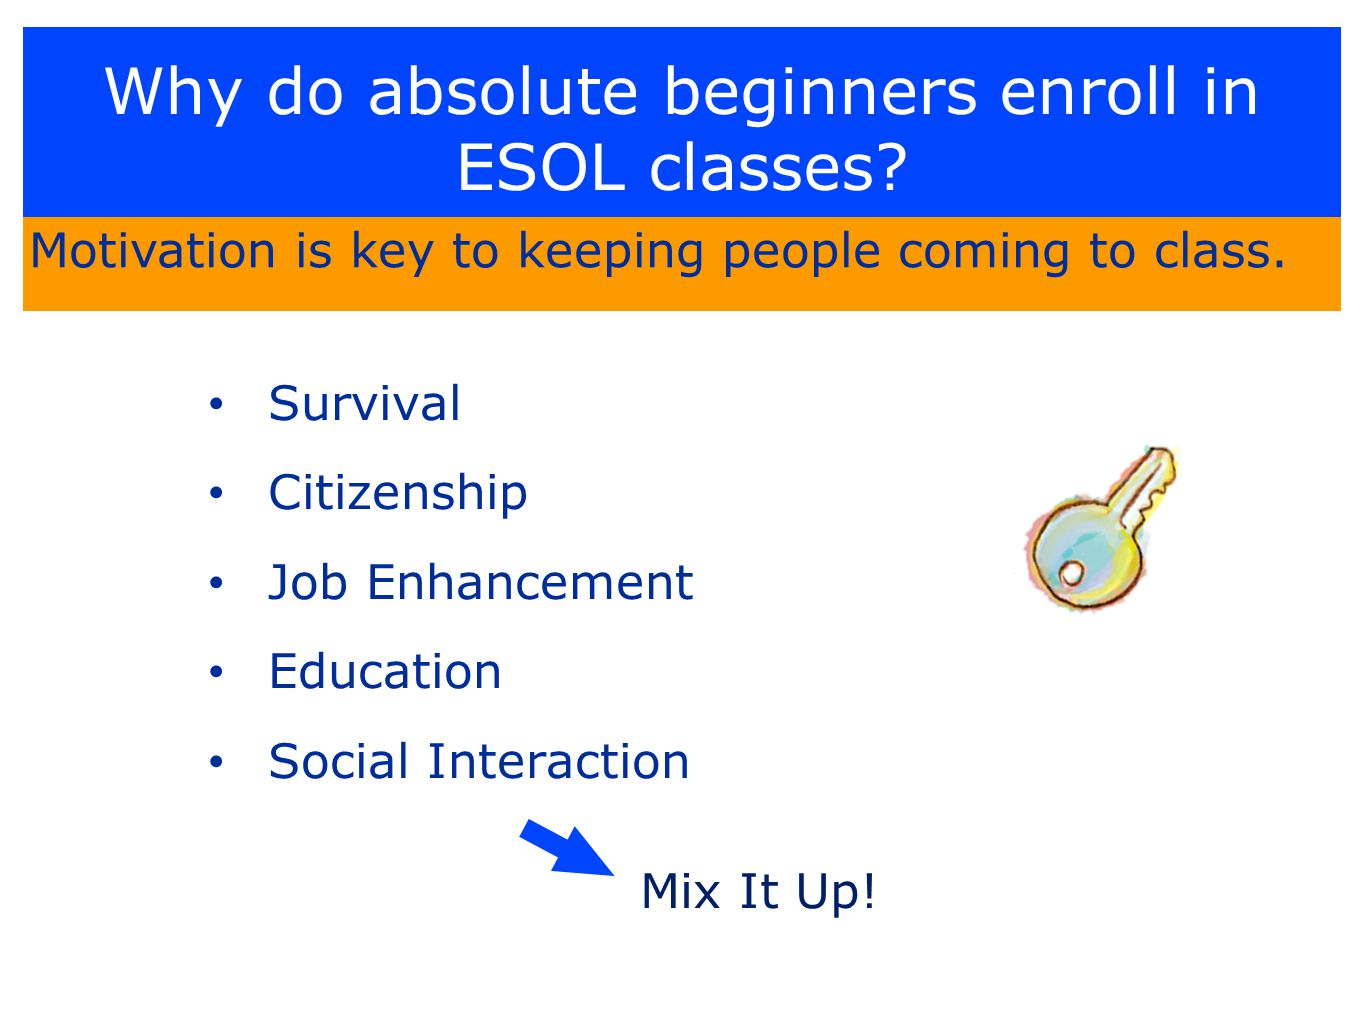 Why do absolute beginners enroll in ESOL classes.